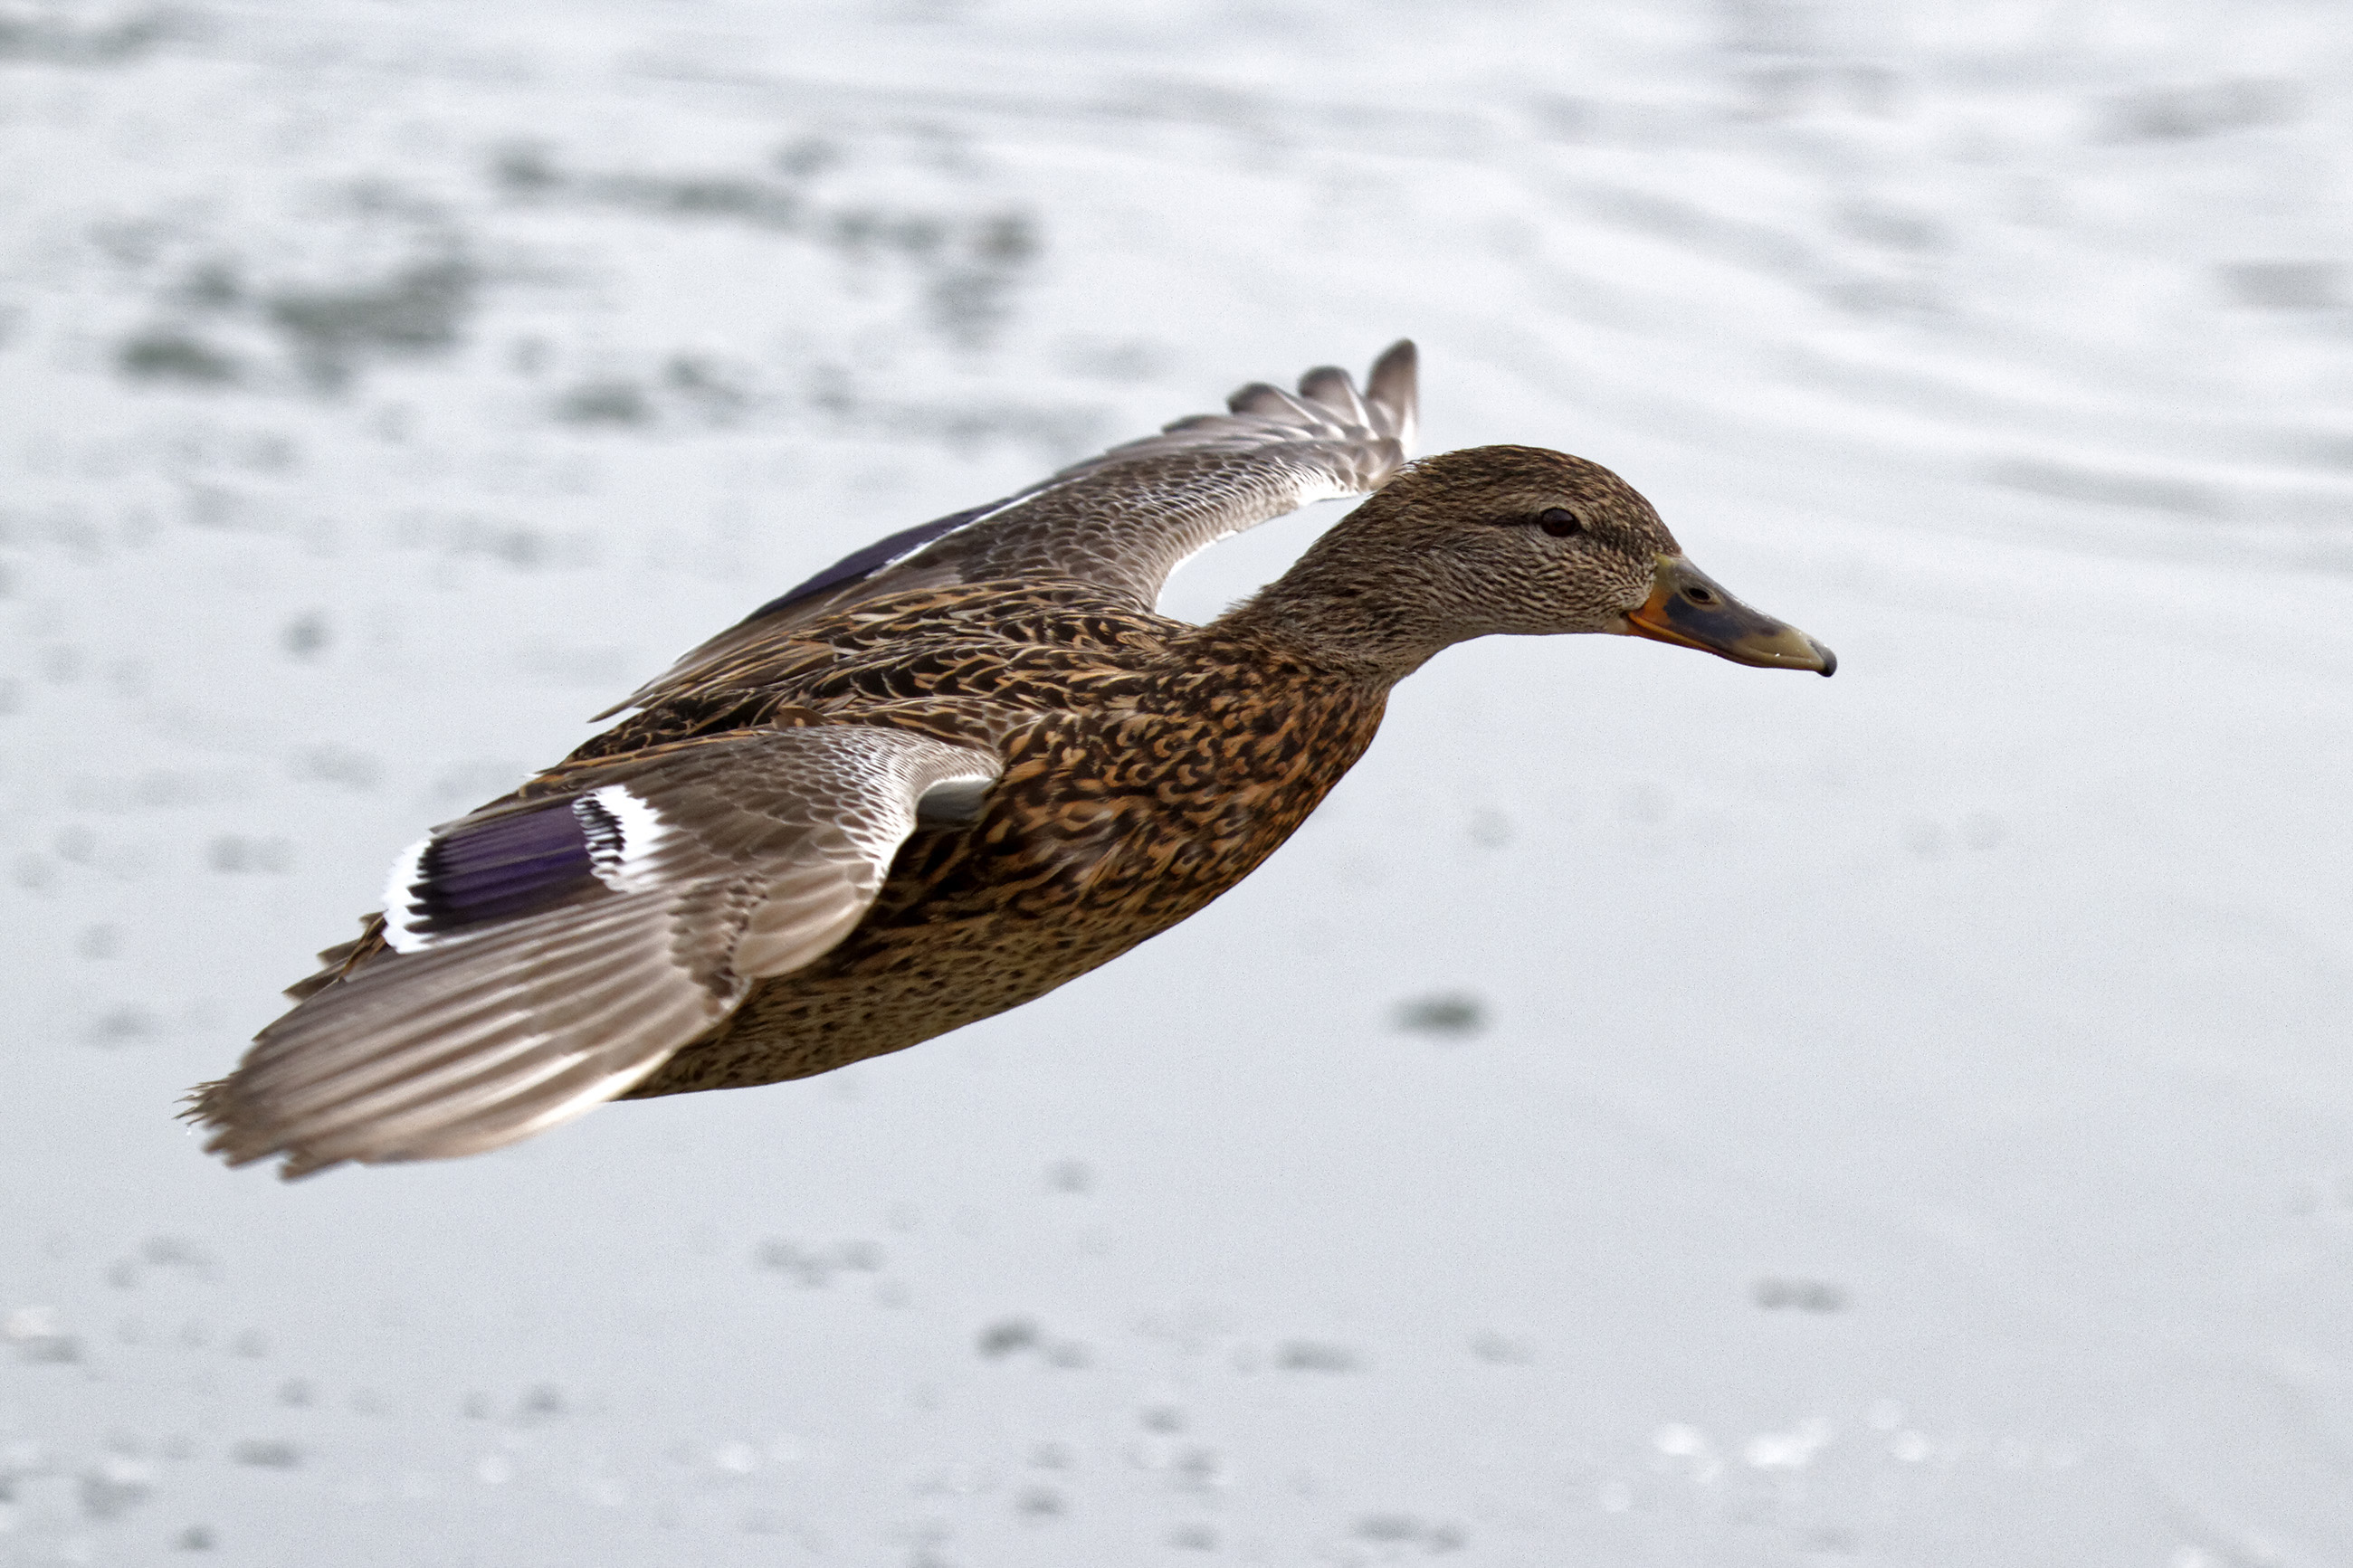 Female mallard duck in flight photo